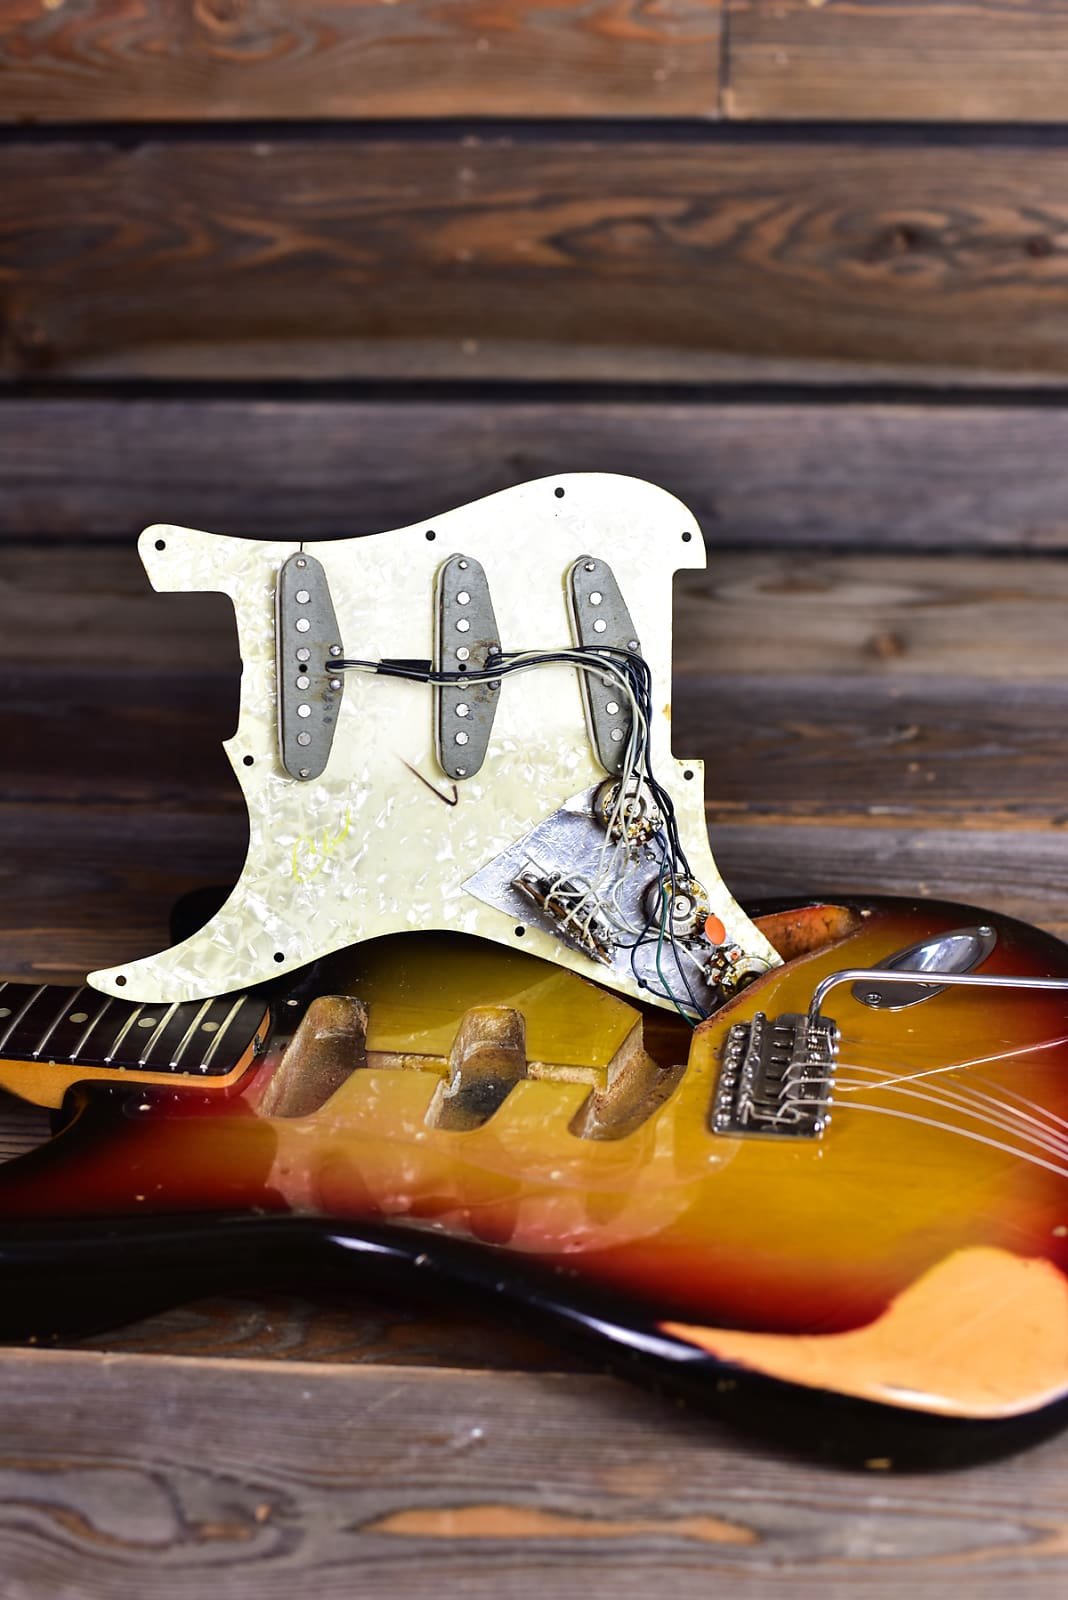 1969 3 Color Sunburst Strat w/ Original Case Demo Video